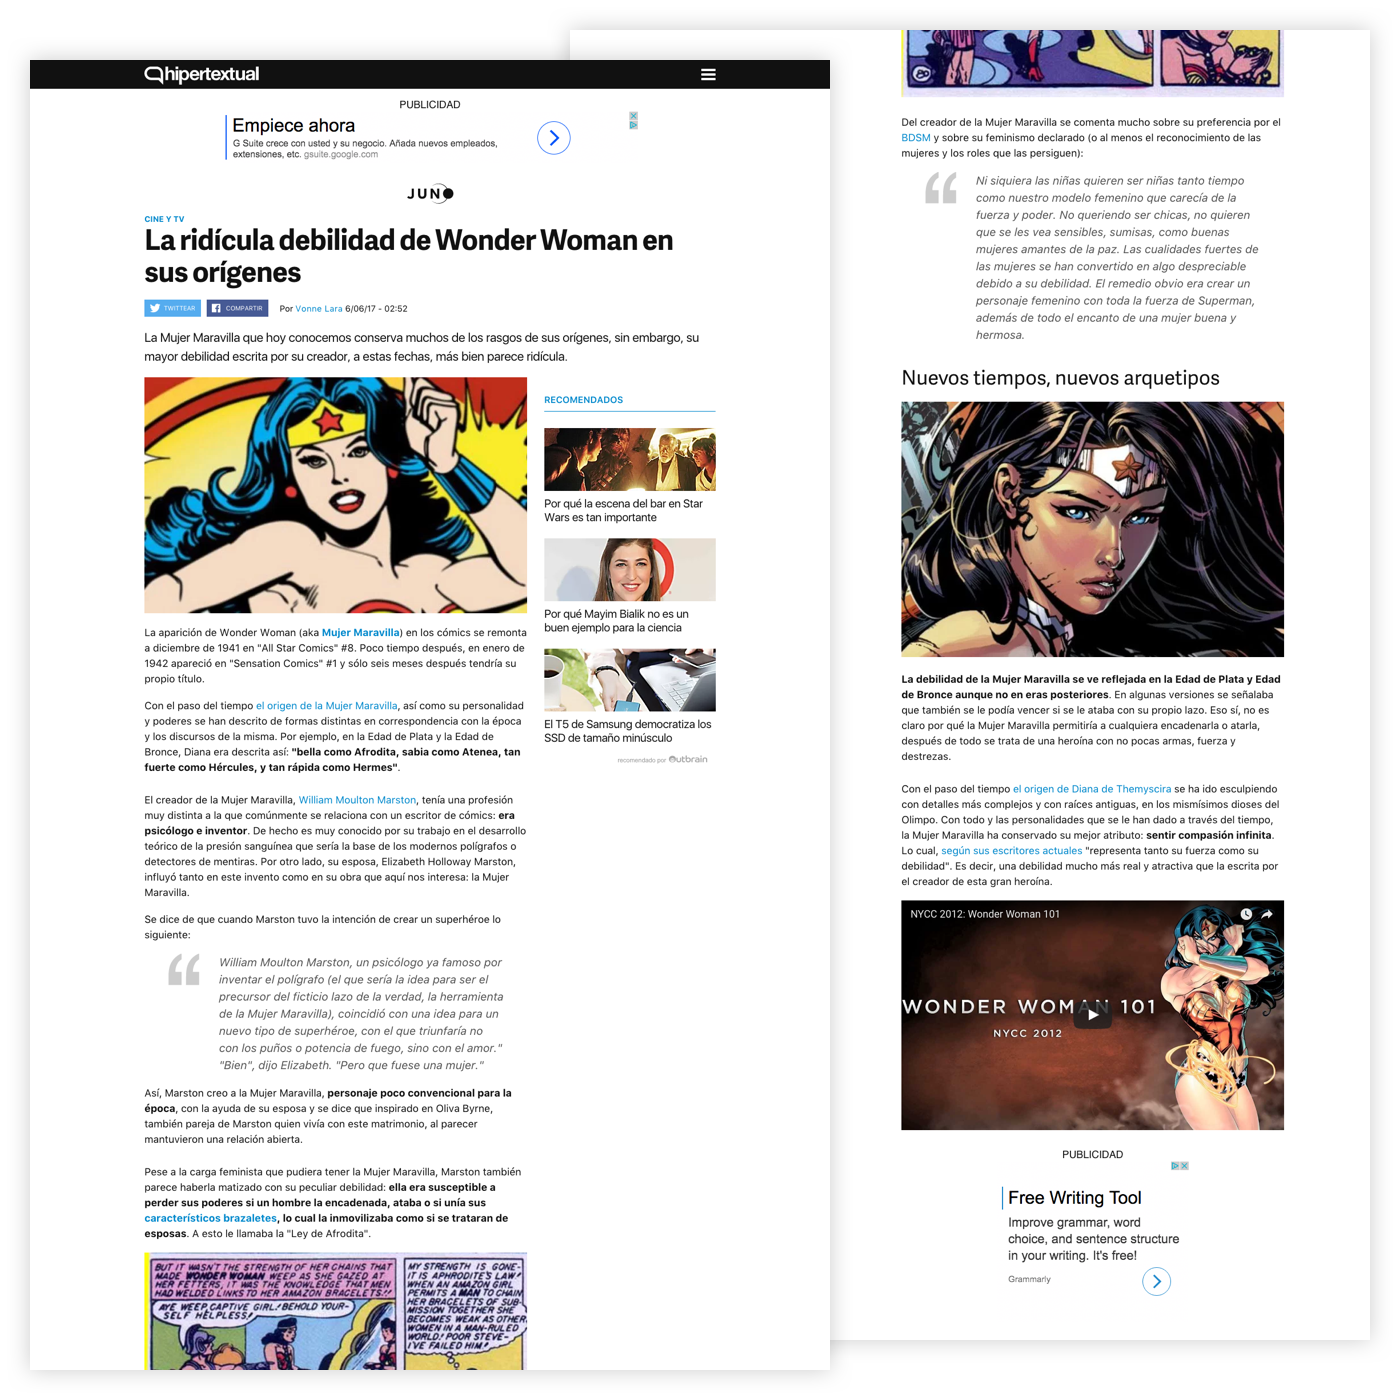 Hipertextual's article page